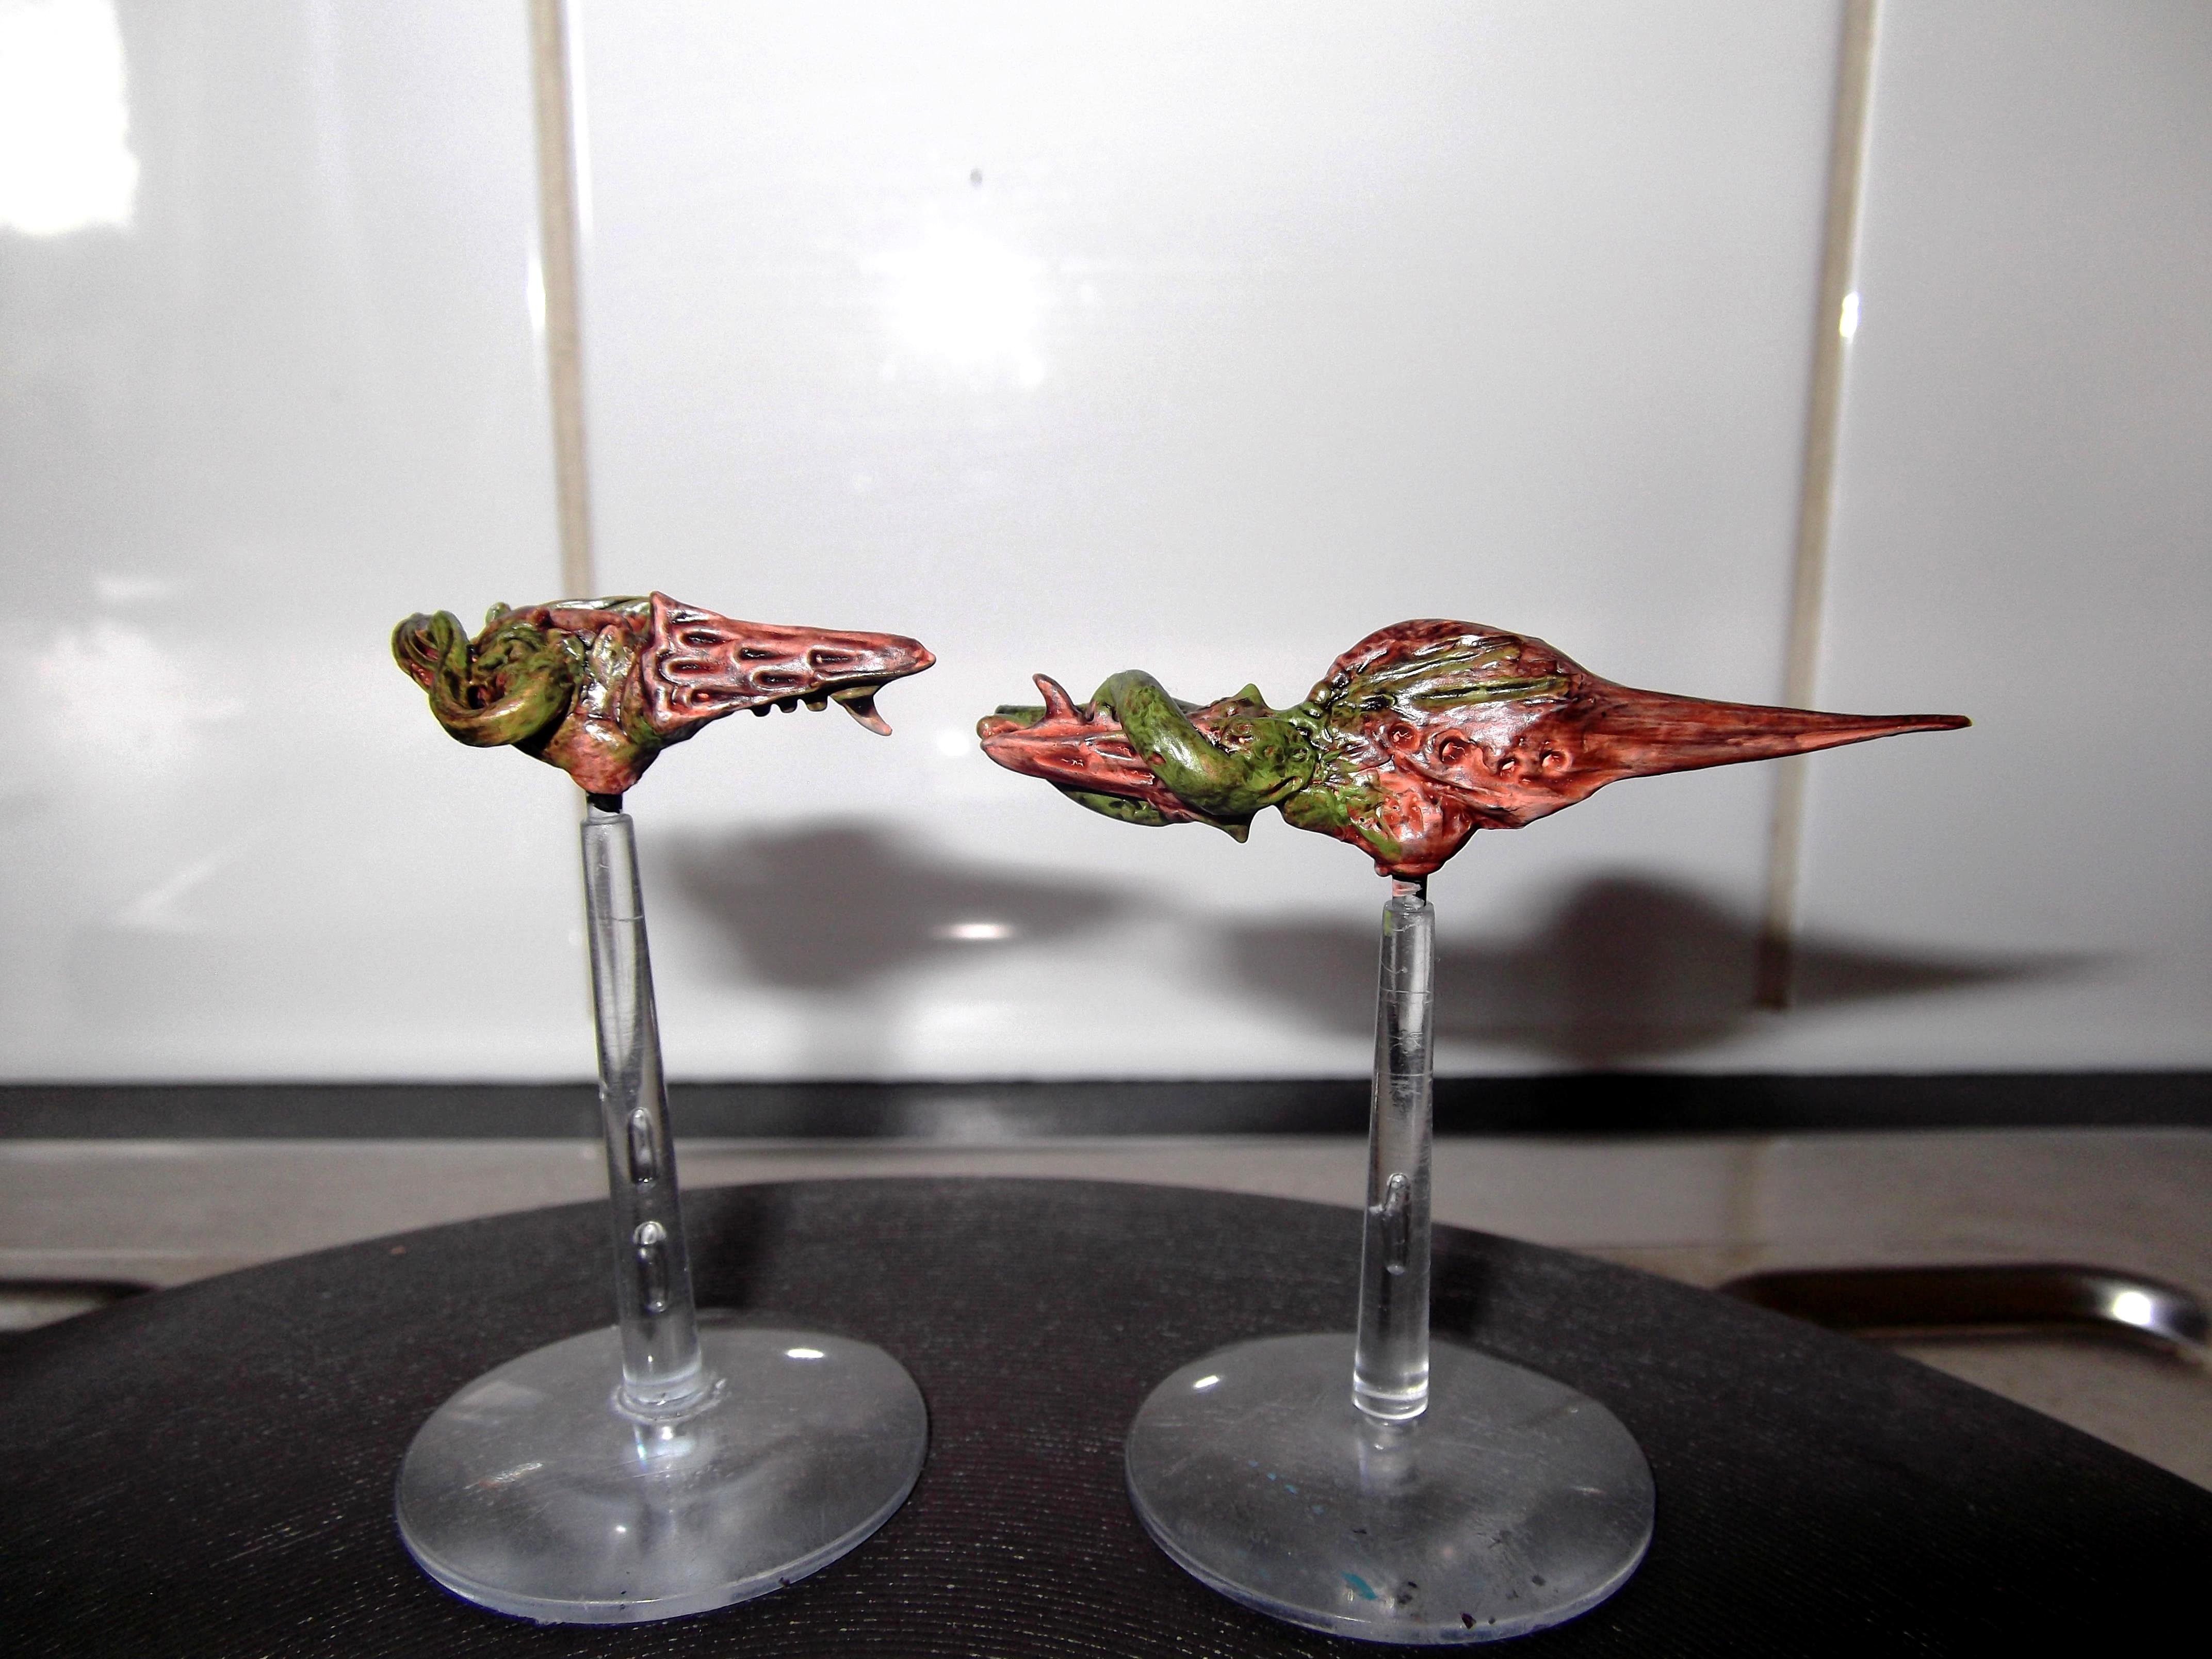 Battlefleet Gothic, Fleet, Greenstuff, Hive Ship, Scratch Build, Sculpting, Ships, Space, Tyranids, Warhammer 40,000